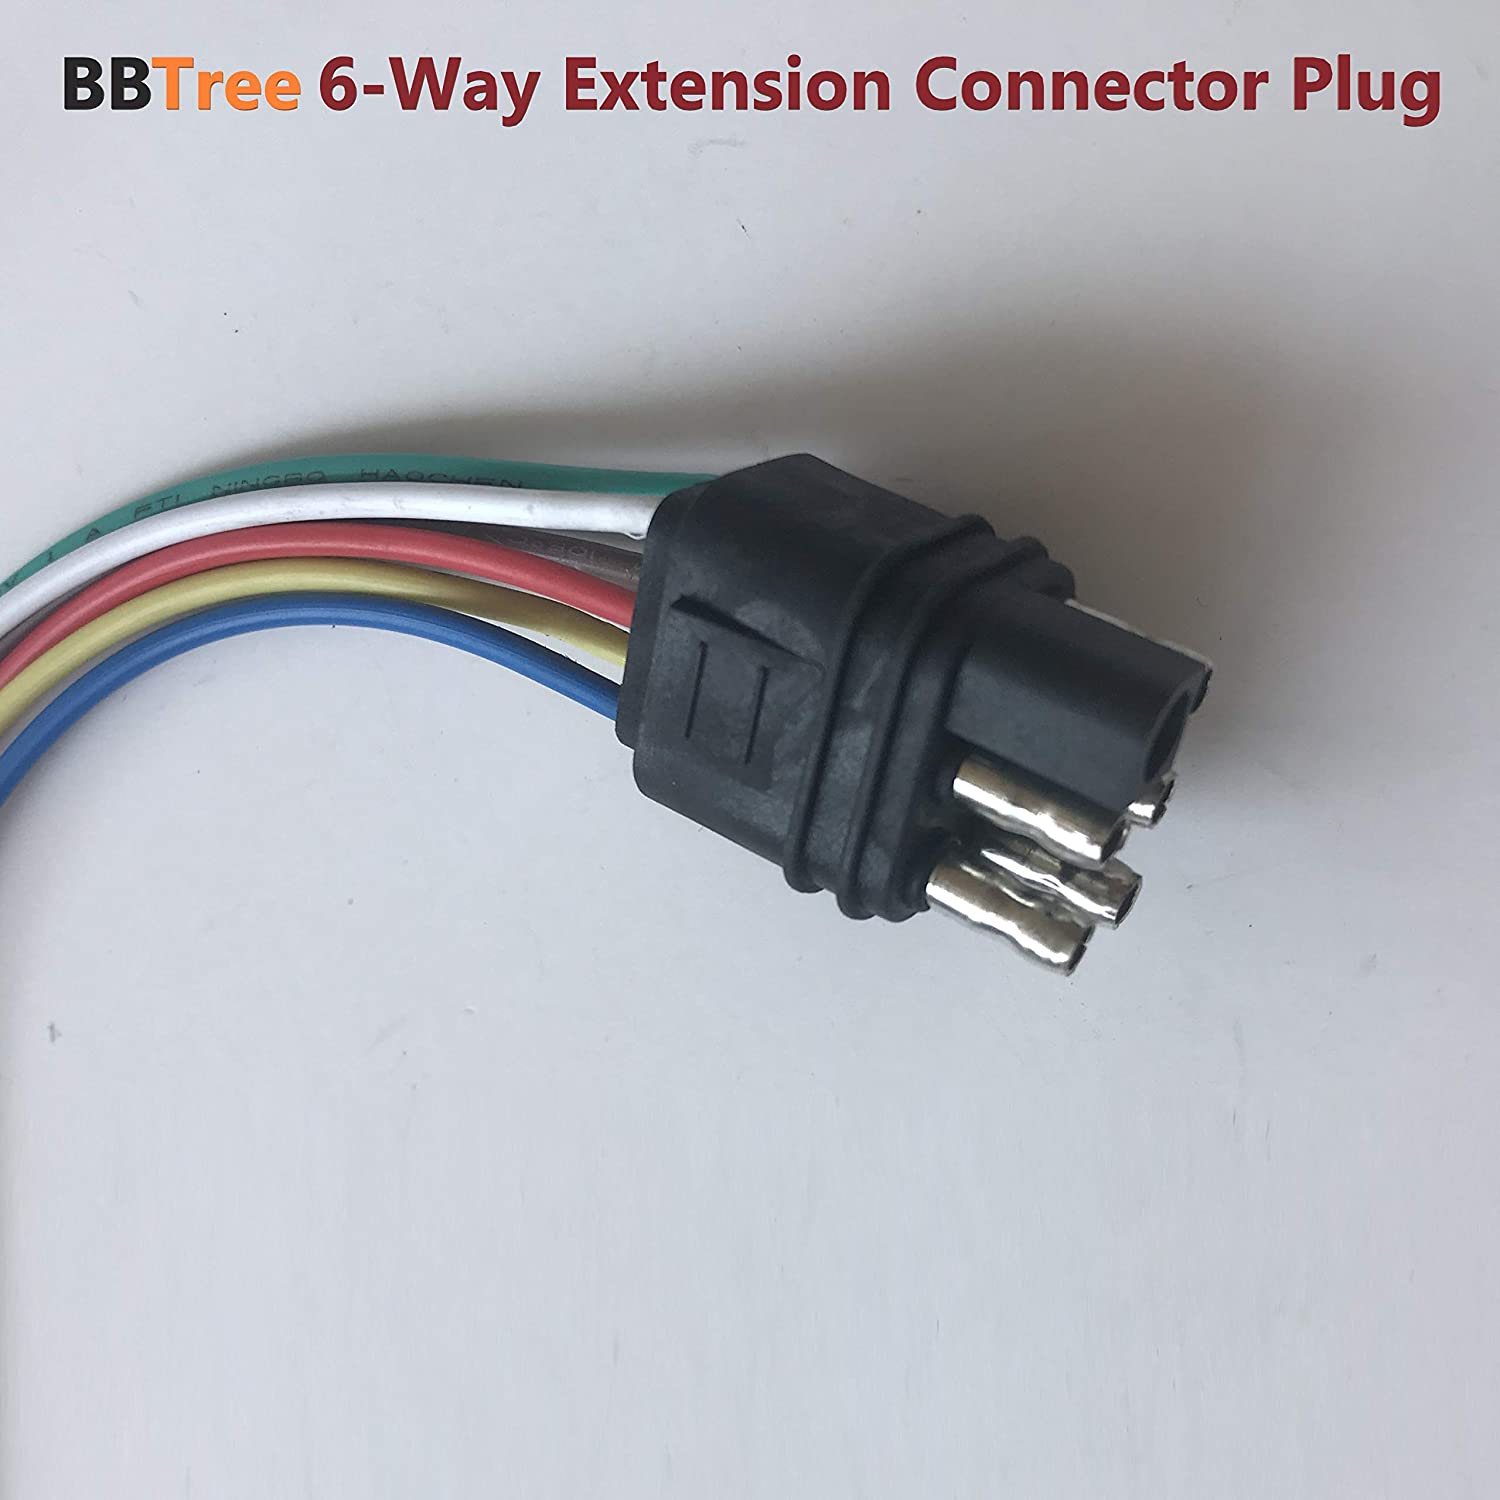 6 Way Flat Trailer Plug-Hitch Light Trailer Wiring Harness Extension Connector T/&M BBTree 6-pin Trailer Wire Extension,12 inch